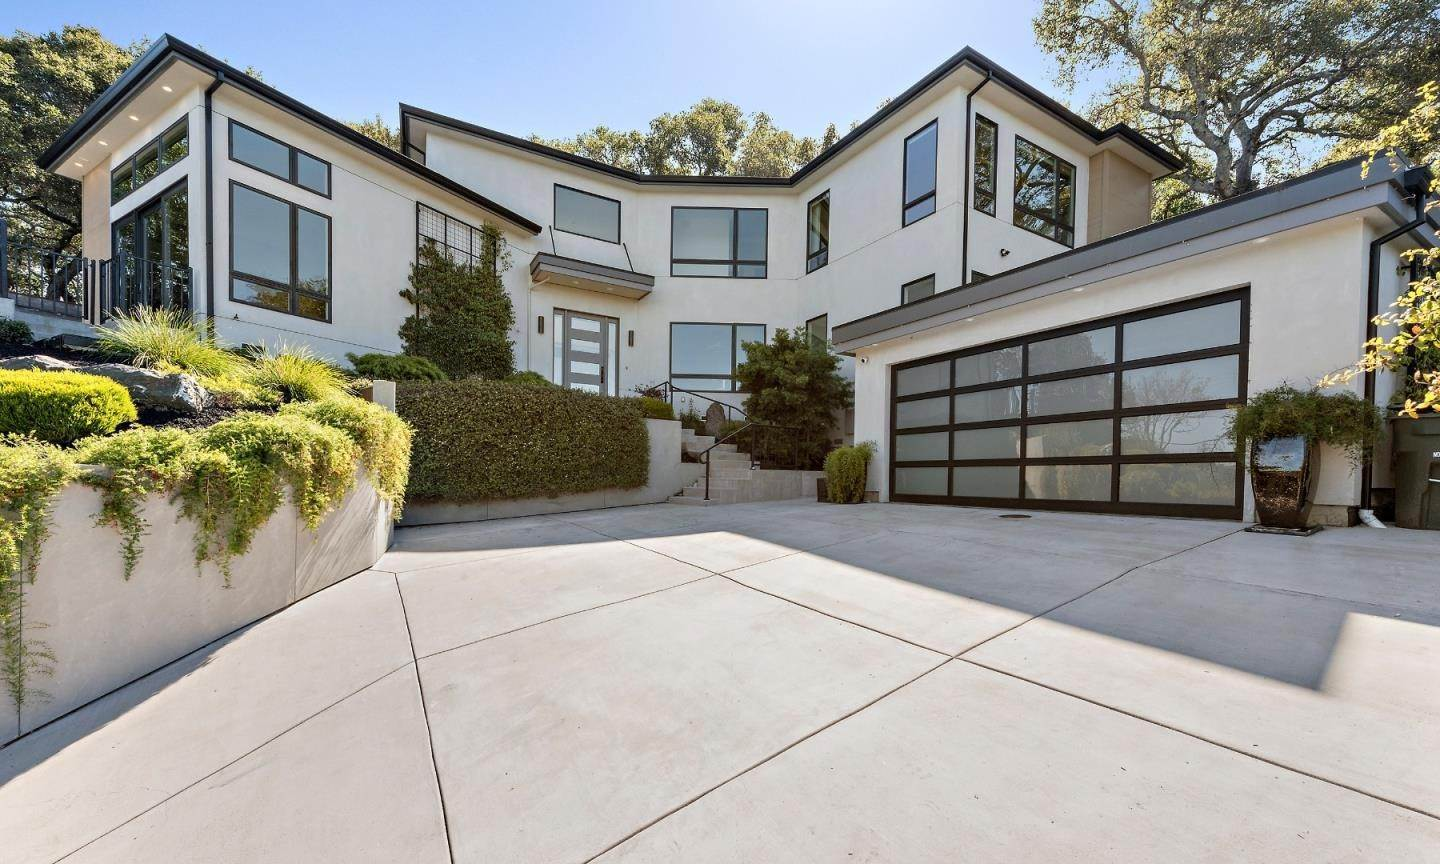 Single Family Homes for Sale at 620 Glenloch Way Redwood City, California 94062 United States